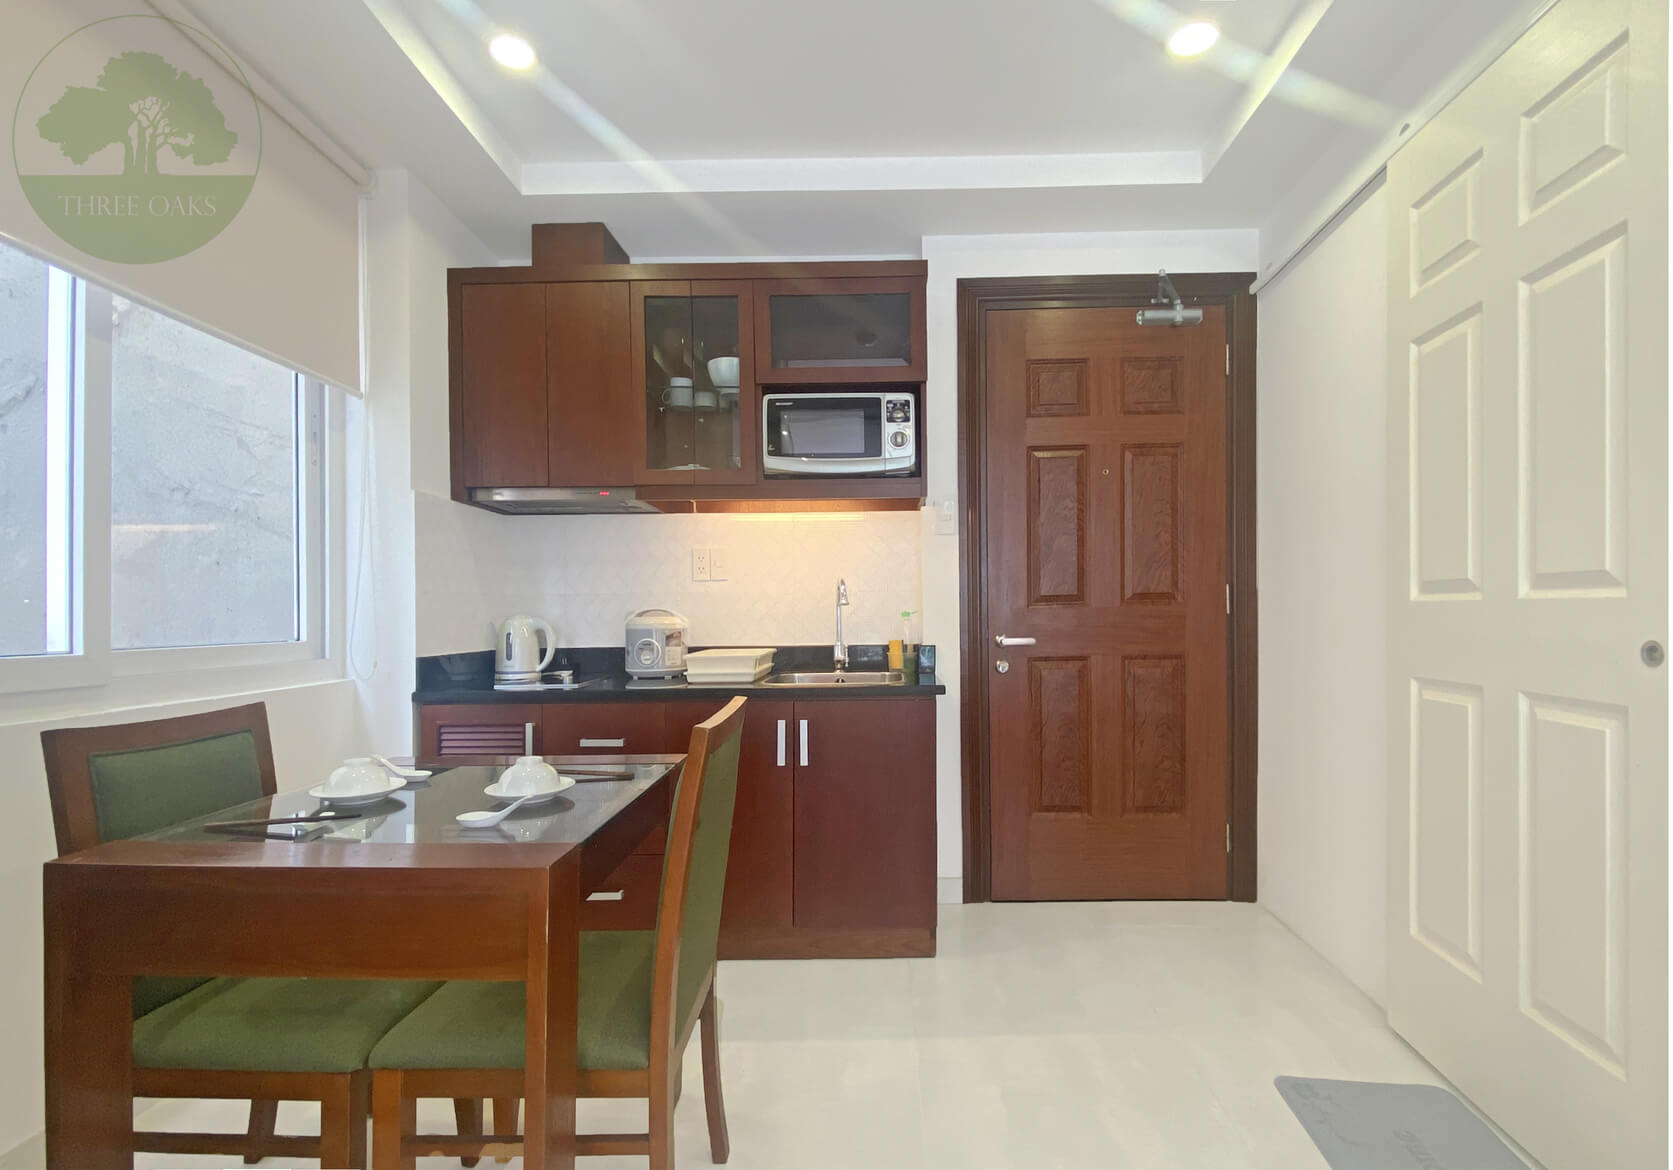 Housing-Apartments-for-rent-in-Saigon-tybe-a-1a-17